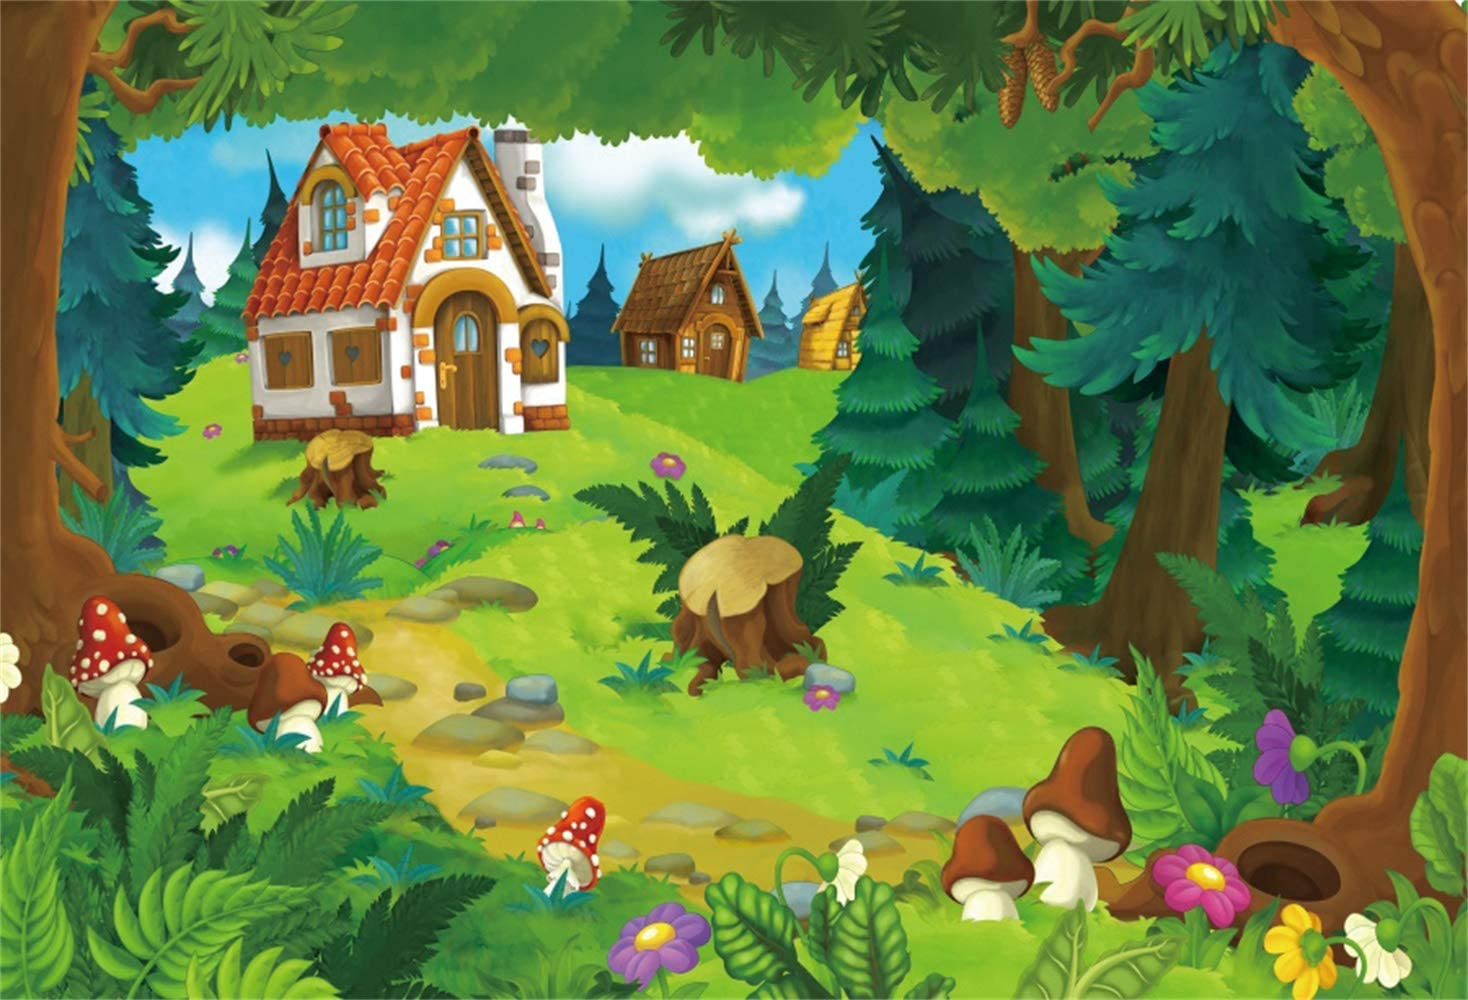 6x4ft Vinyl Cartoon Background Mushroom House Rabbit Backdrop for Photography Children Kids Birthday Party Banner Cotton with Pole Pocket Photo Studio Props MLYZY42 for Party Decoration Birthday YouTu